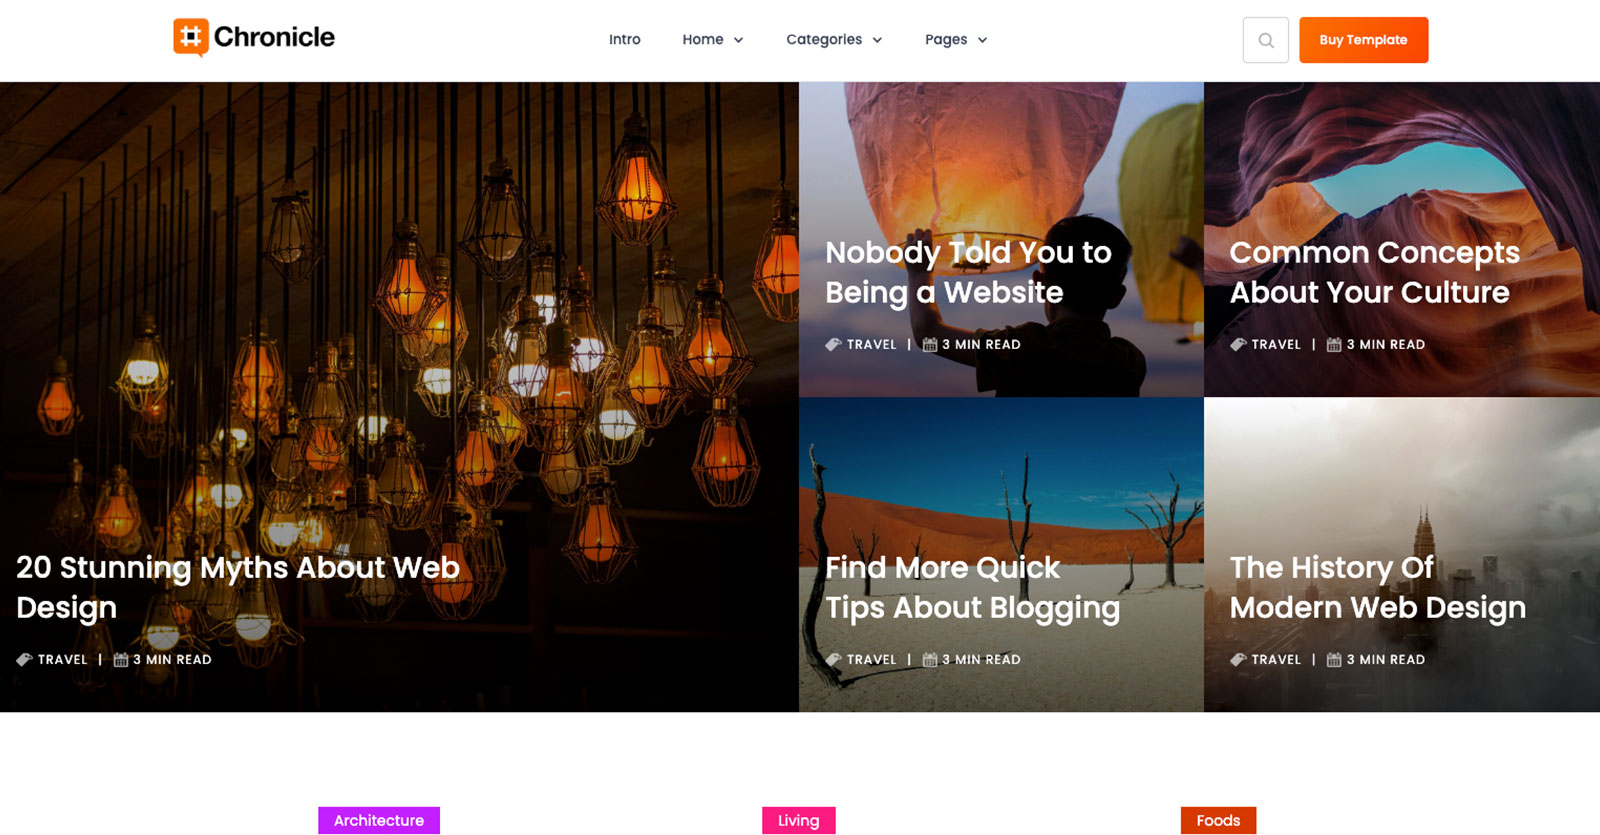 chronicle webflow template